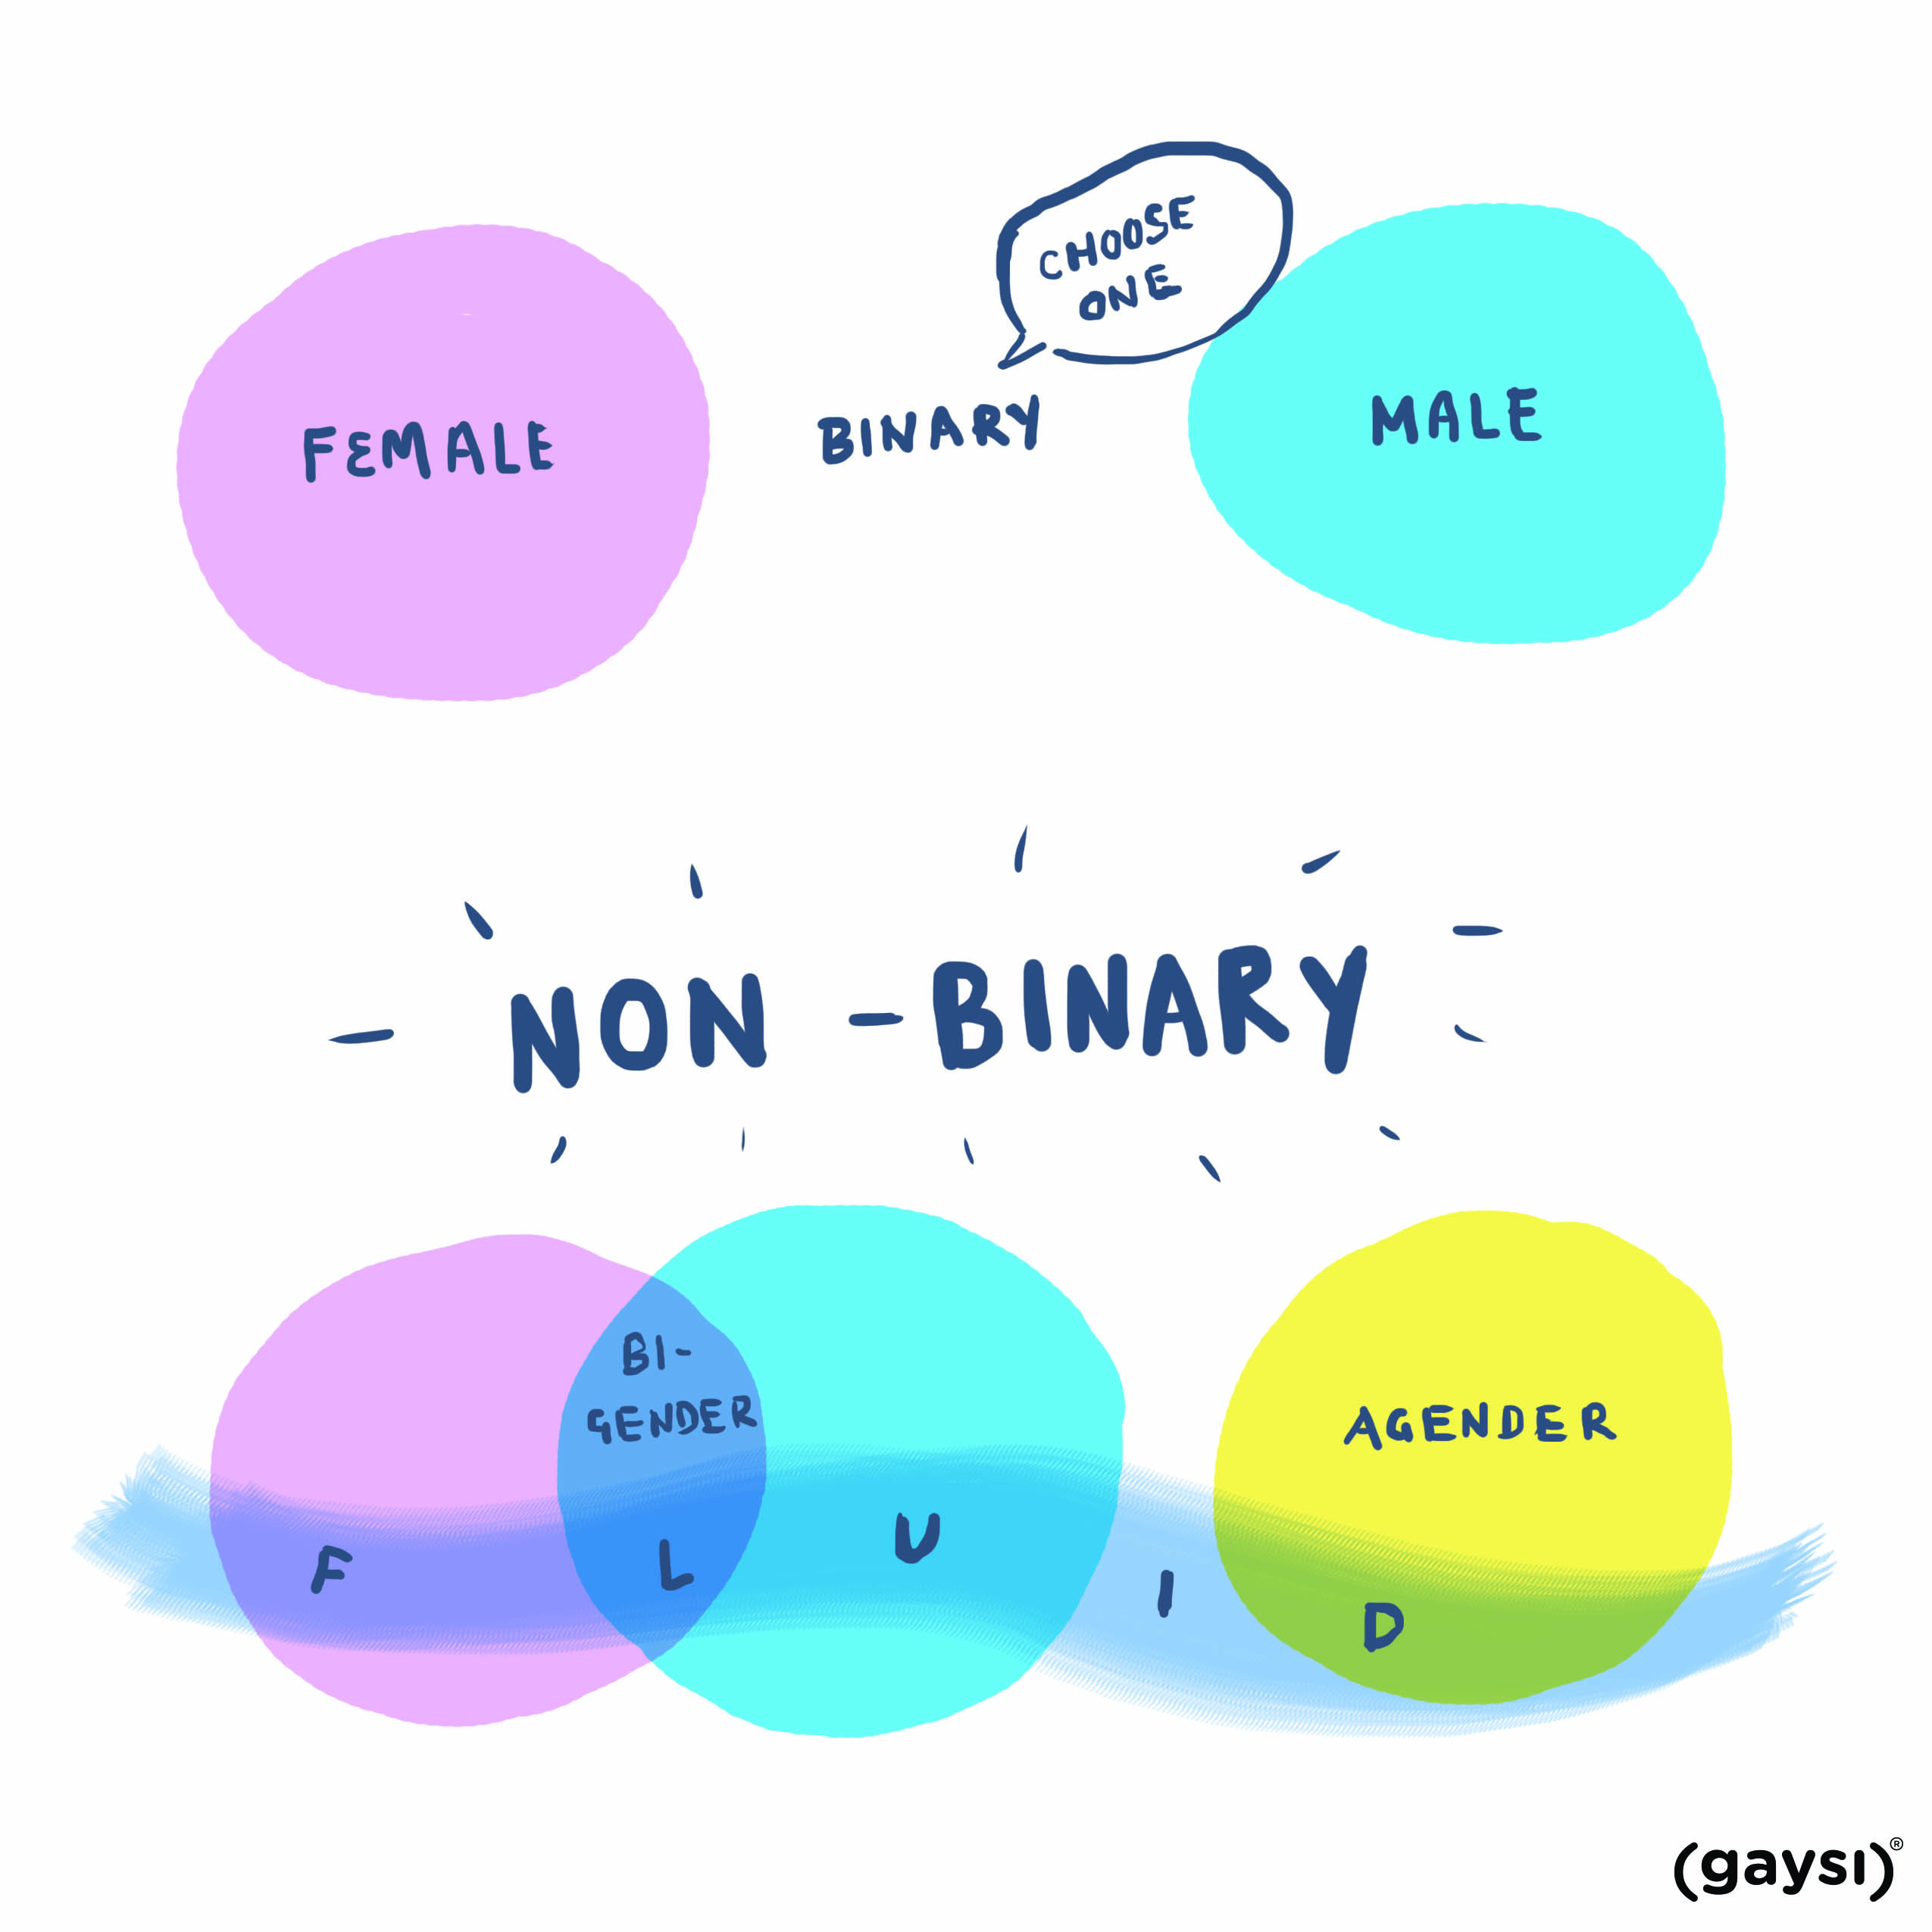 the queer questionnaire #11: what does non-binary mean? - gaysi